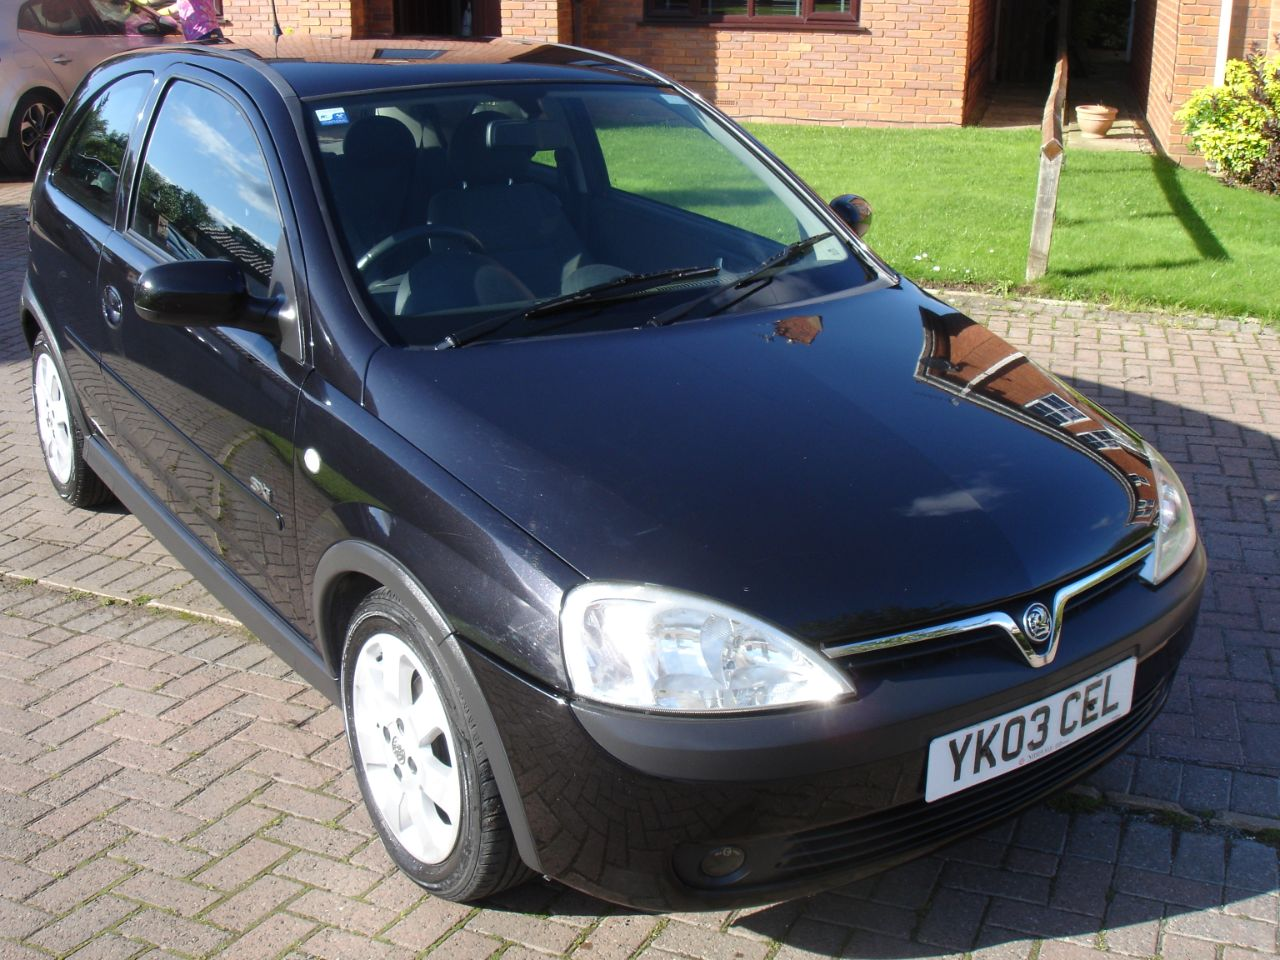 Vauxhall Corsa 1.2i 16V SXi Acon 3dr Hatchback Petrol Metallic Black at Level Pitch Selby